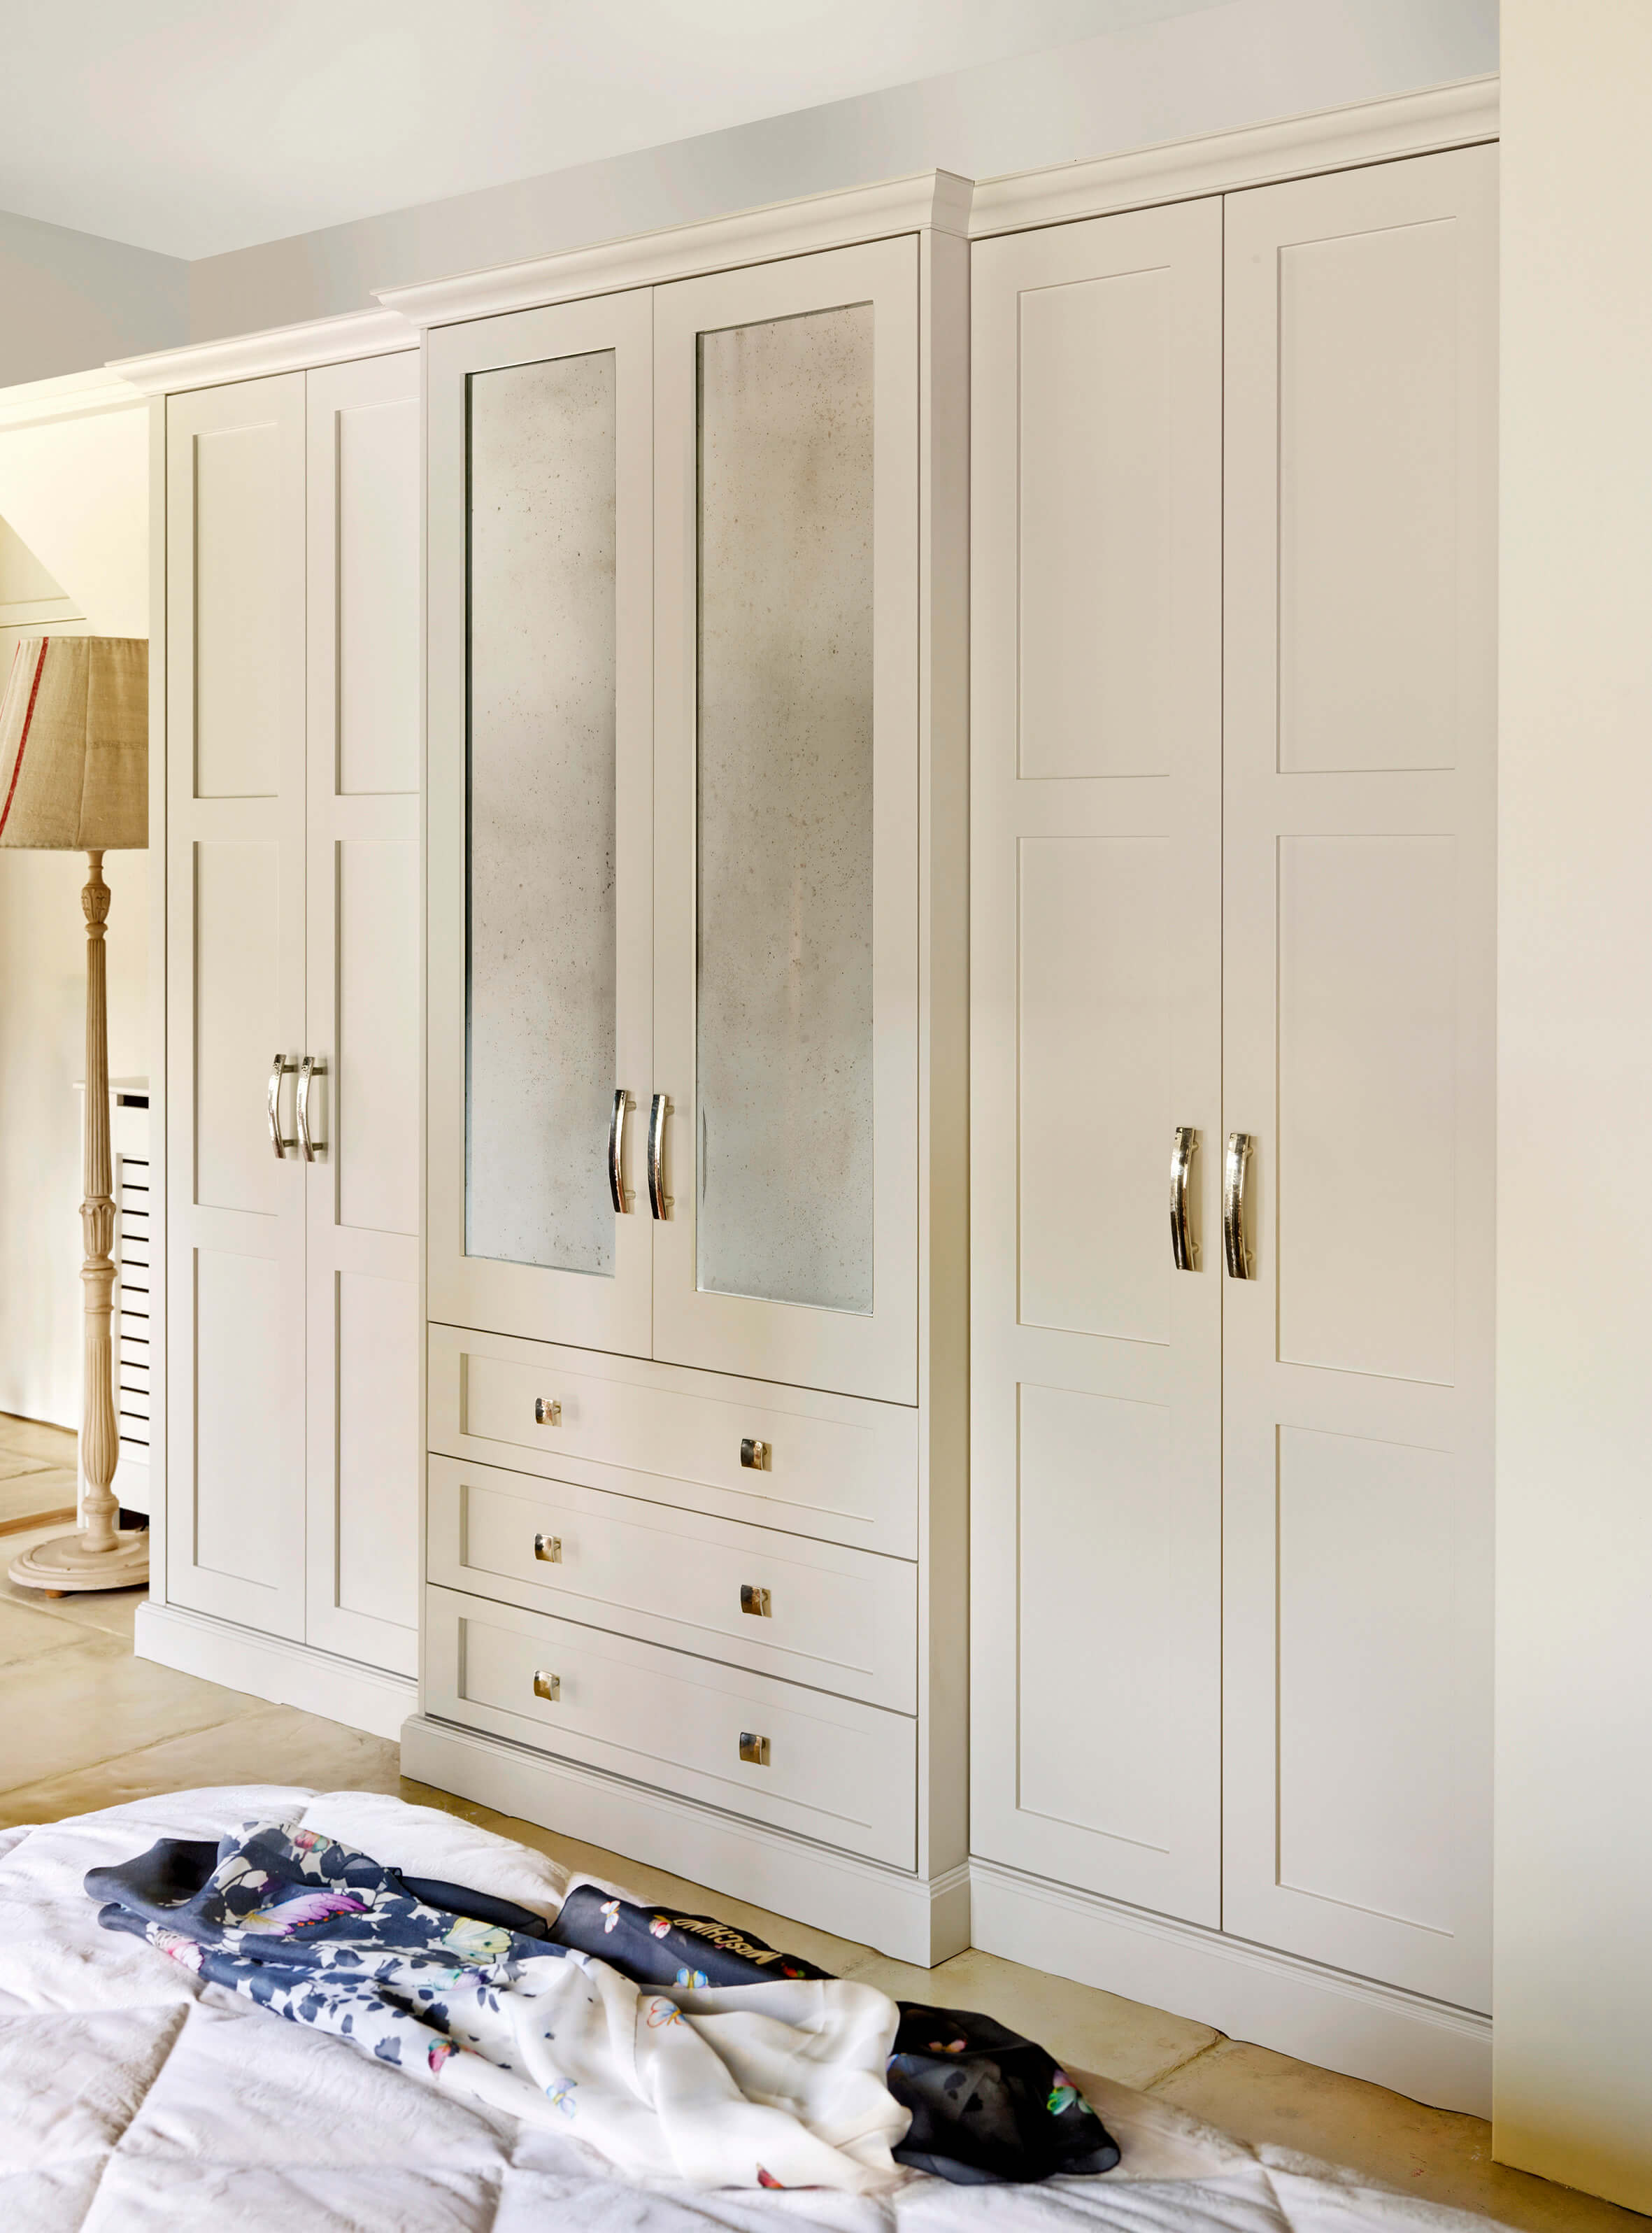 Shaker Style Fitted Wardrobes by. John Lewis of Hungerford